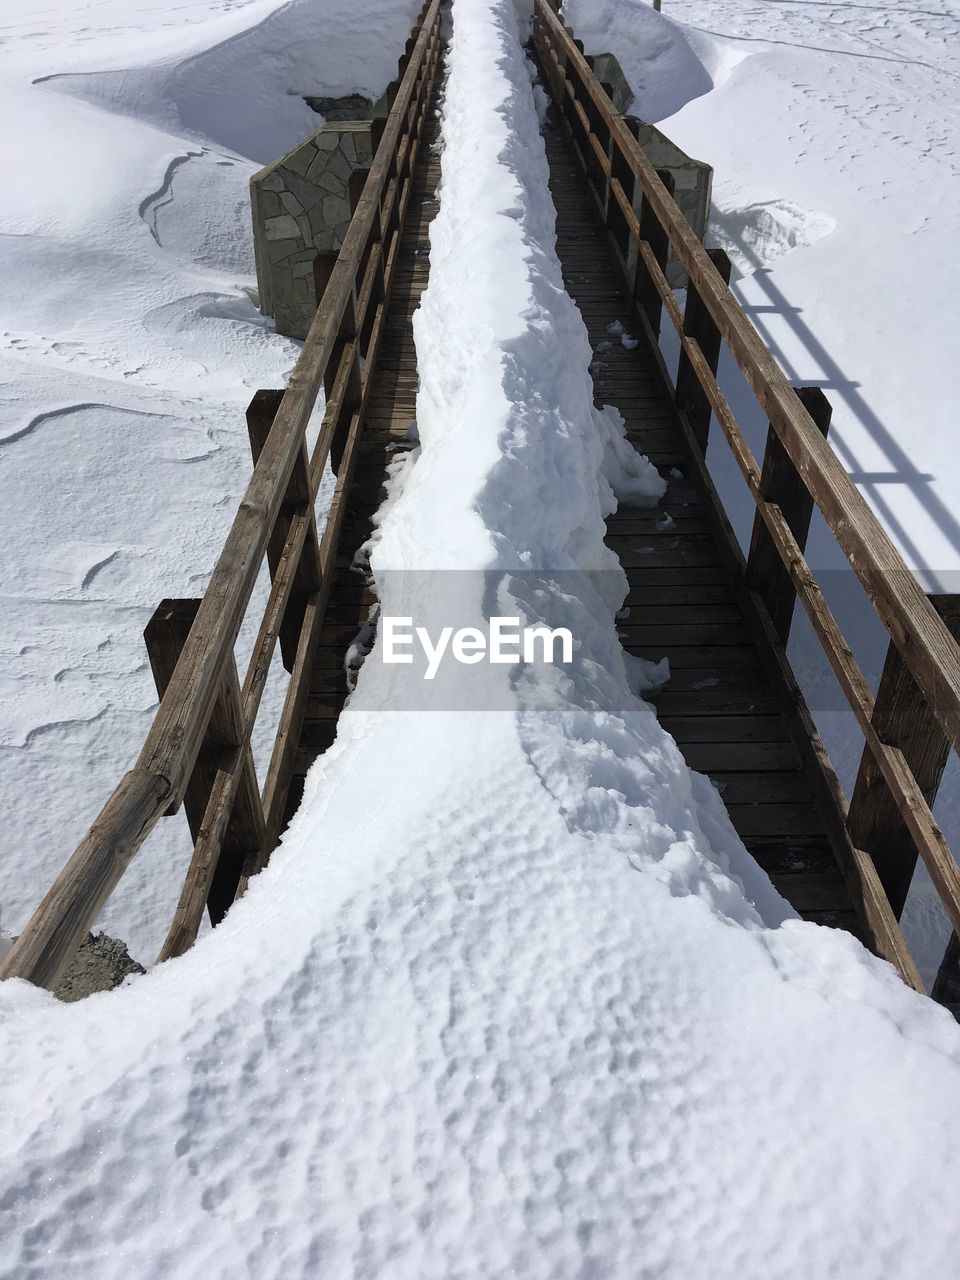 snow, cold temperature, winter, frozen, white color, day, covering, nature, ice, no people, beauty in nature, built structure, architecture, scenics - nature, wood - material, outdoors, environment, deep snow, land, icicle, extreme weather, snowcapped mountain, powder snow